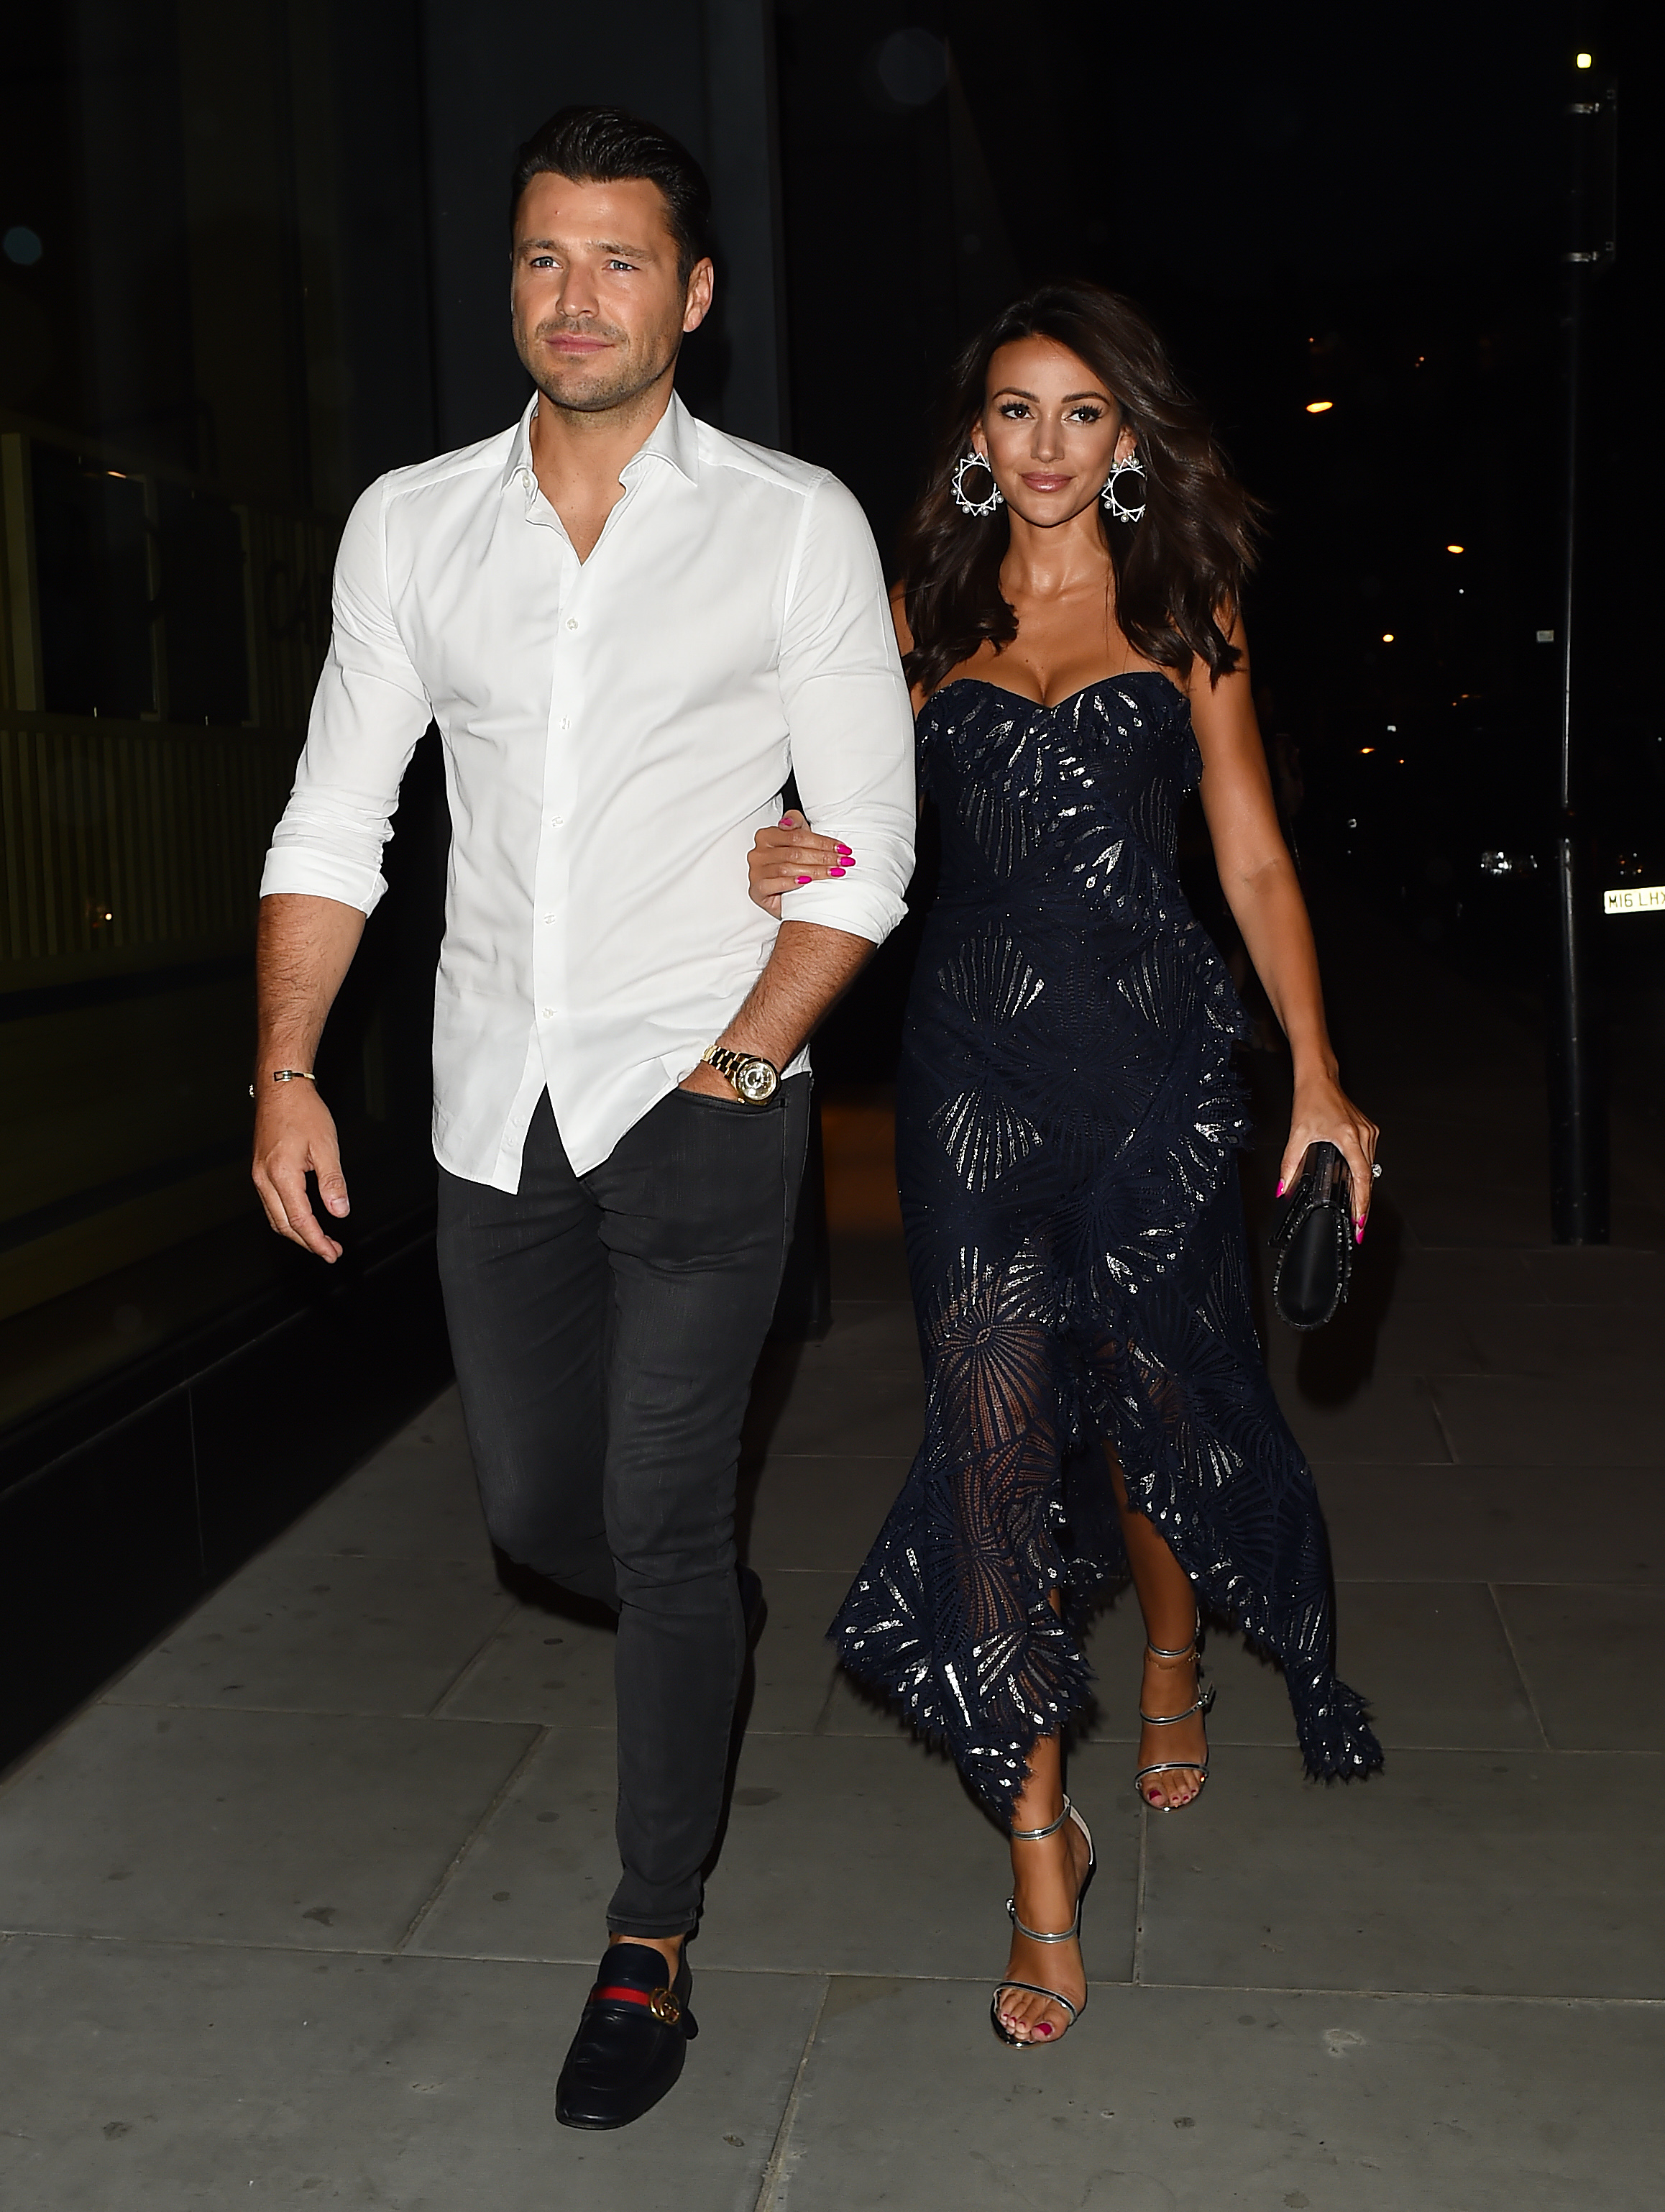 Celebrities attend the ITV Summer Party at Nobu Hotel in Shoreditch Pictured: Mark Wright,Michelle Keegan Ref: SPL5011179 200718 NON-EXCLUSIVE Picture by: Hewitt / SplashNews.com Splash News and Pictures Los Angeles: 310-821-2666 New York: 212-619-2666 London: +44 (0)20 7644 7656 Berlin: +49 175 3764 166 photodesk@splashnews.com World Rights